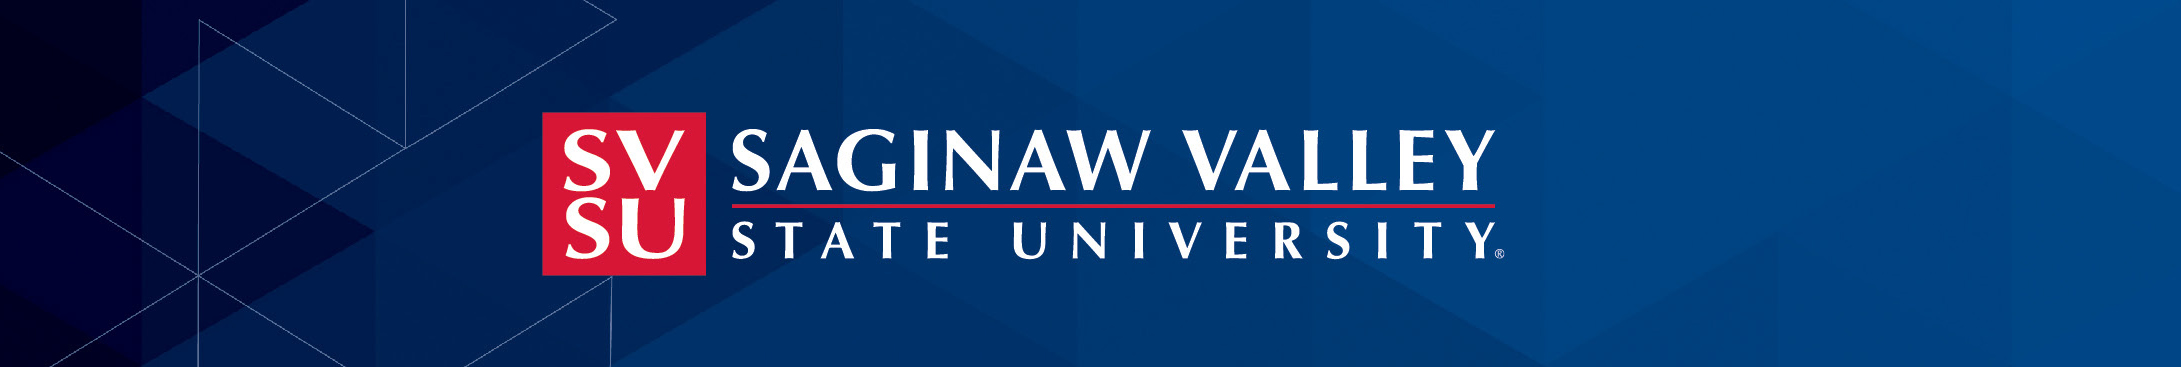 SVSU Logo on Blue background